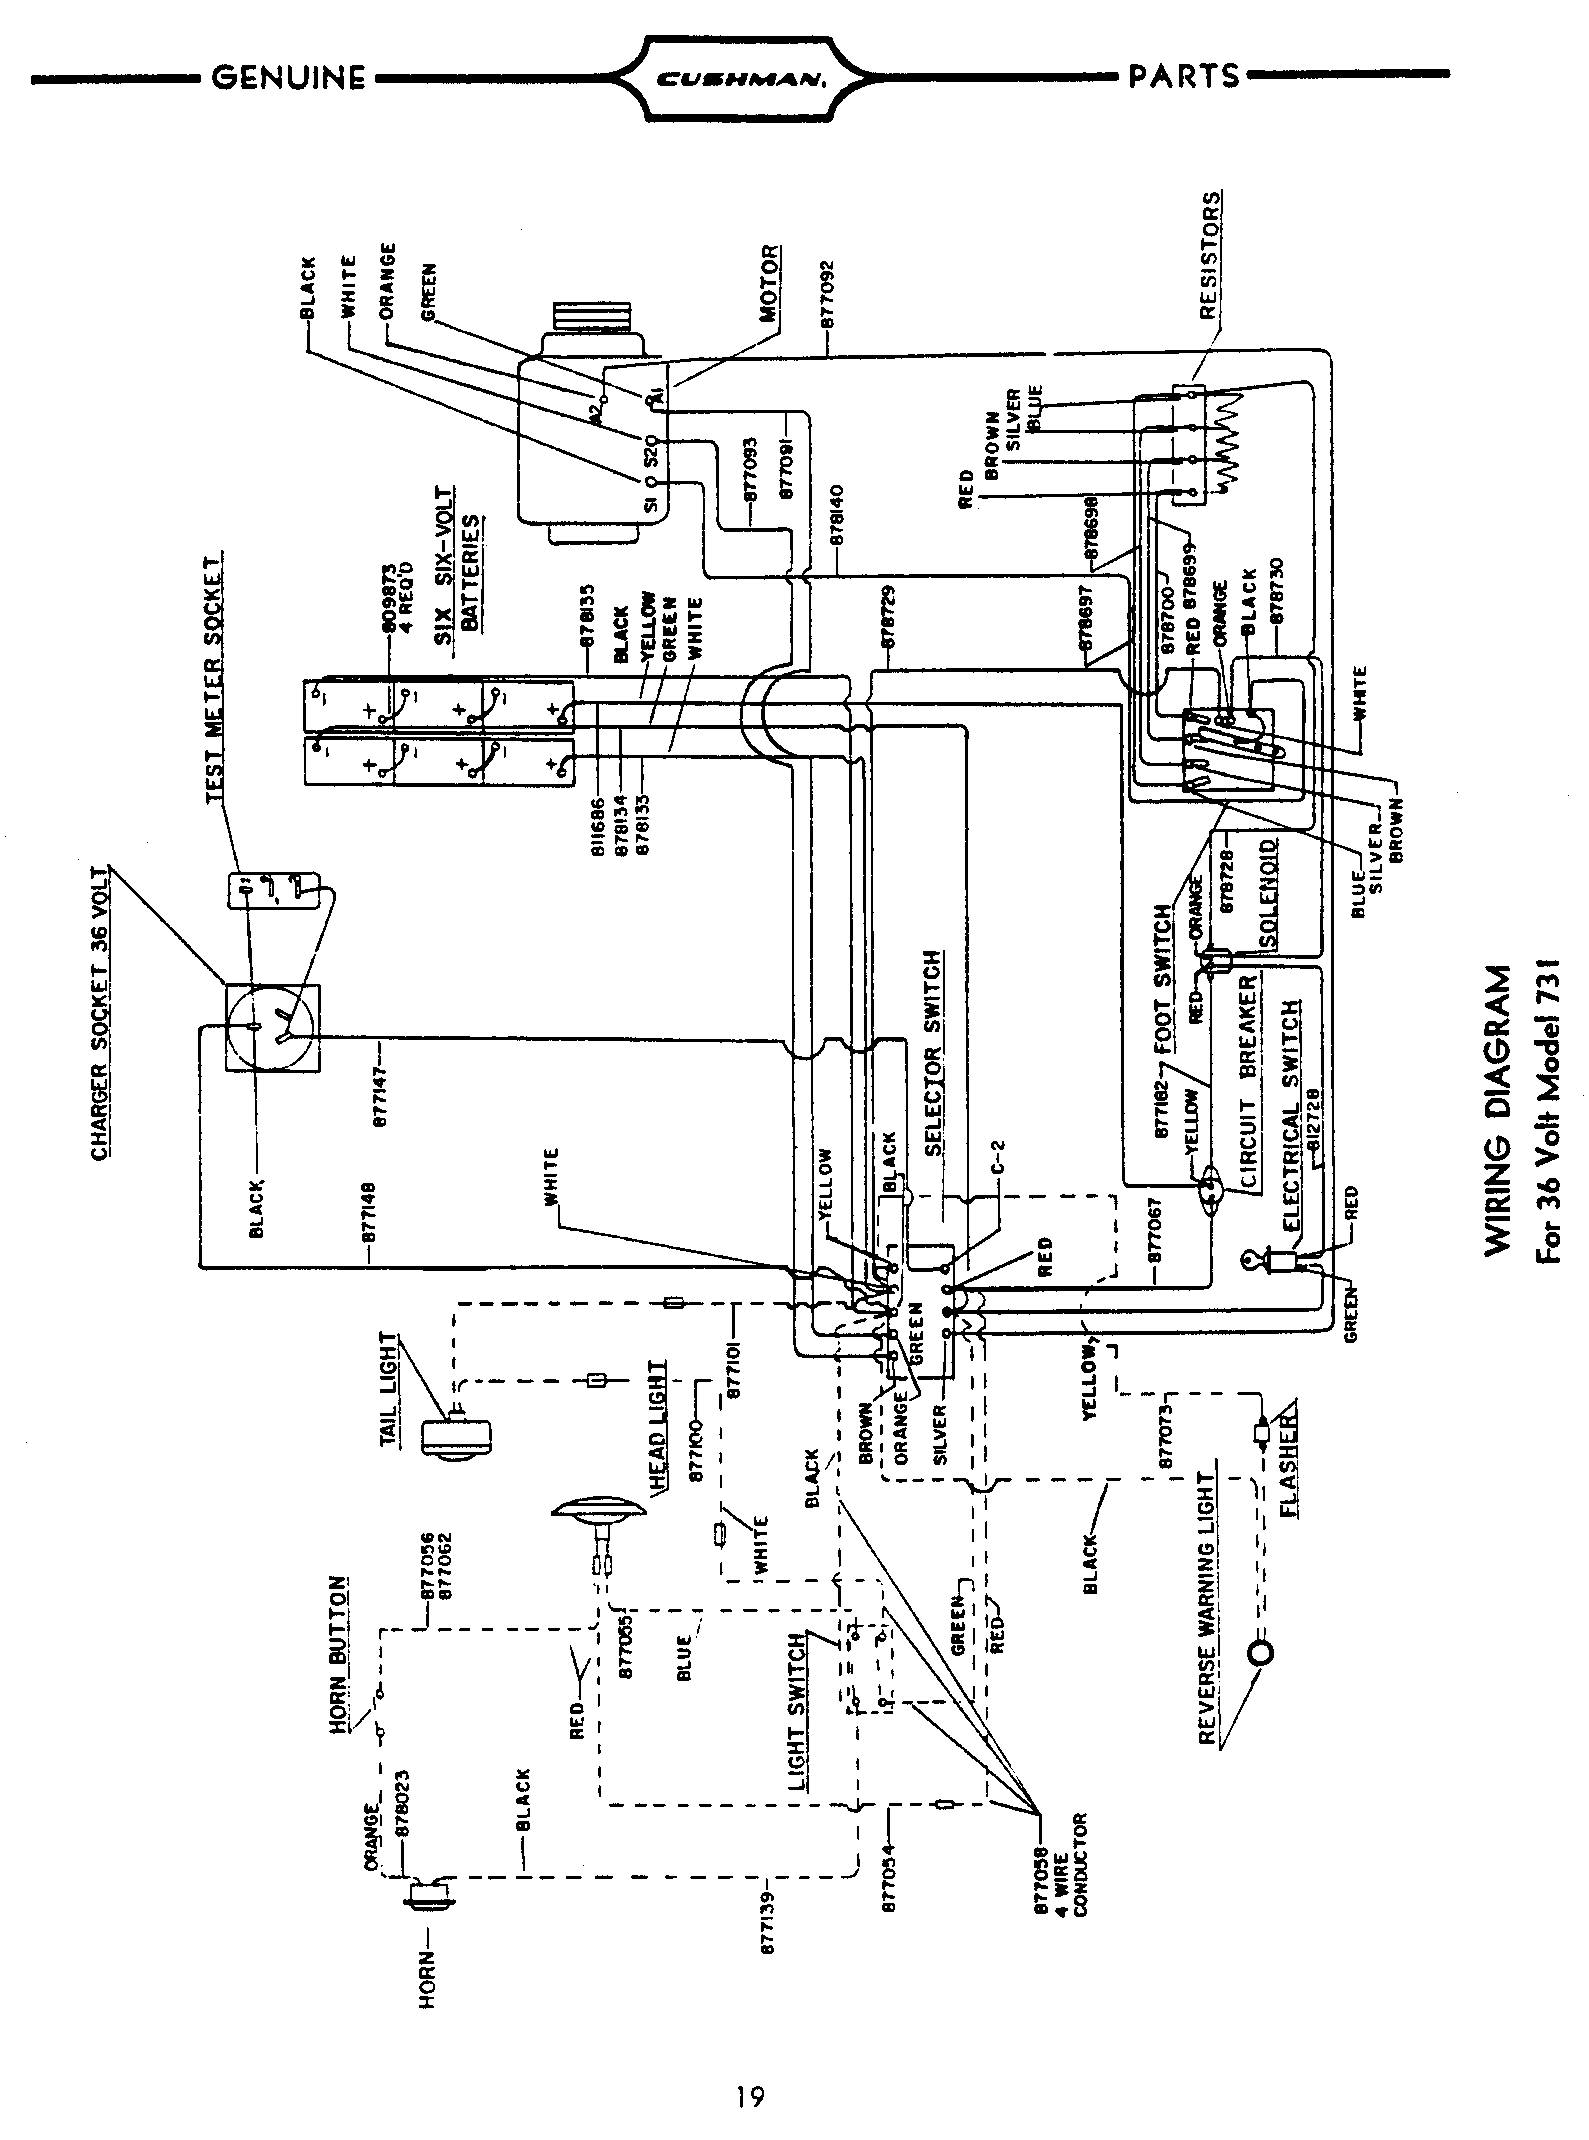 Melex Electric Golf Cart 6 Volt Wiring Diagram